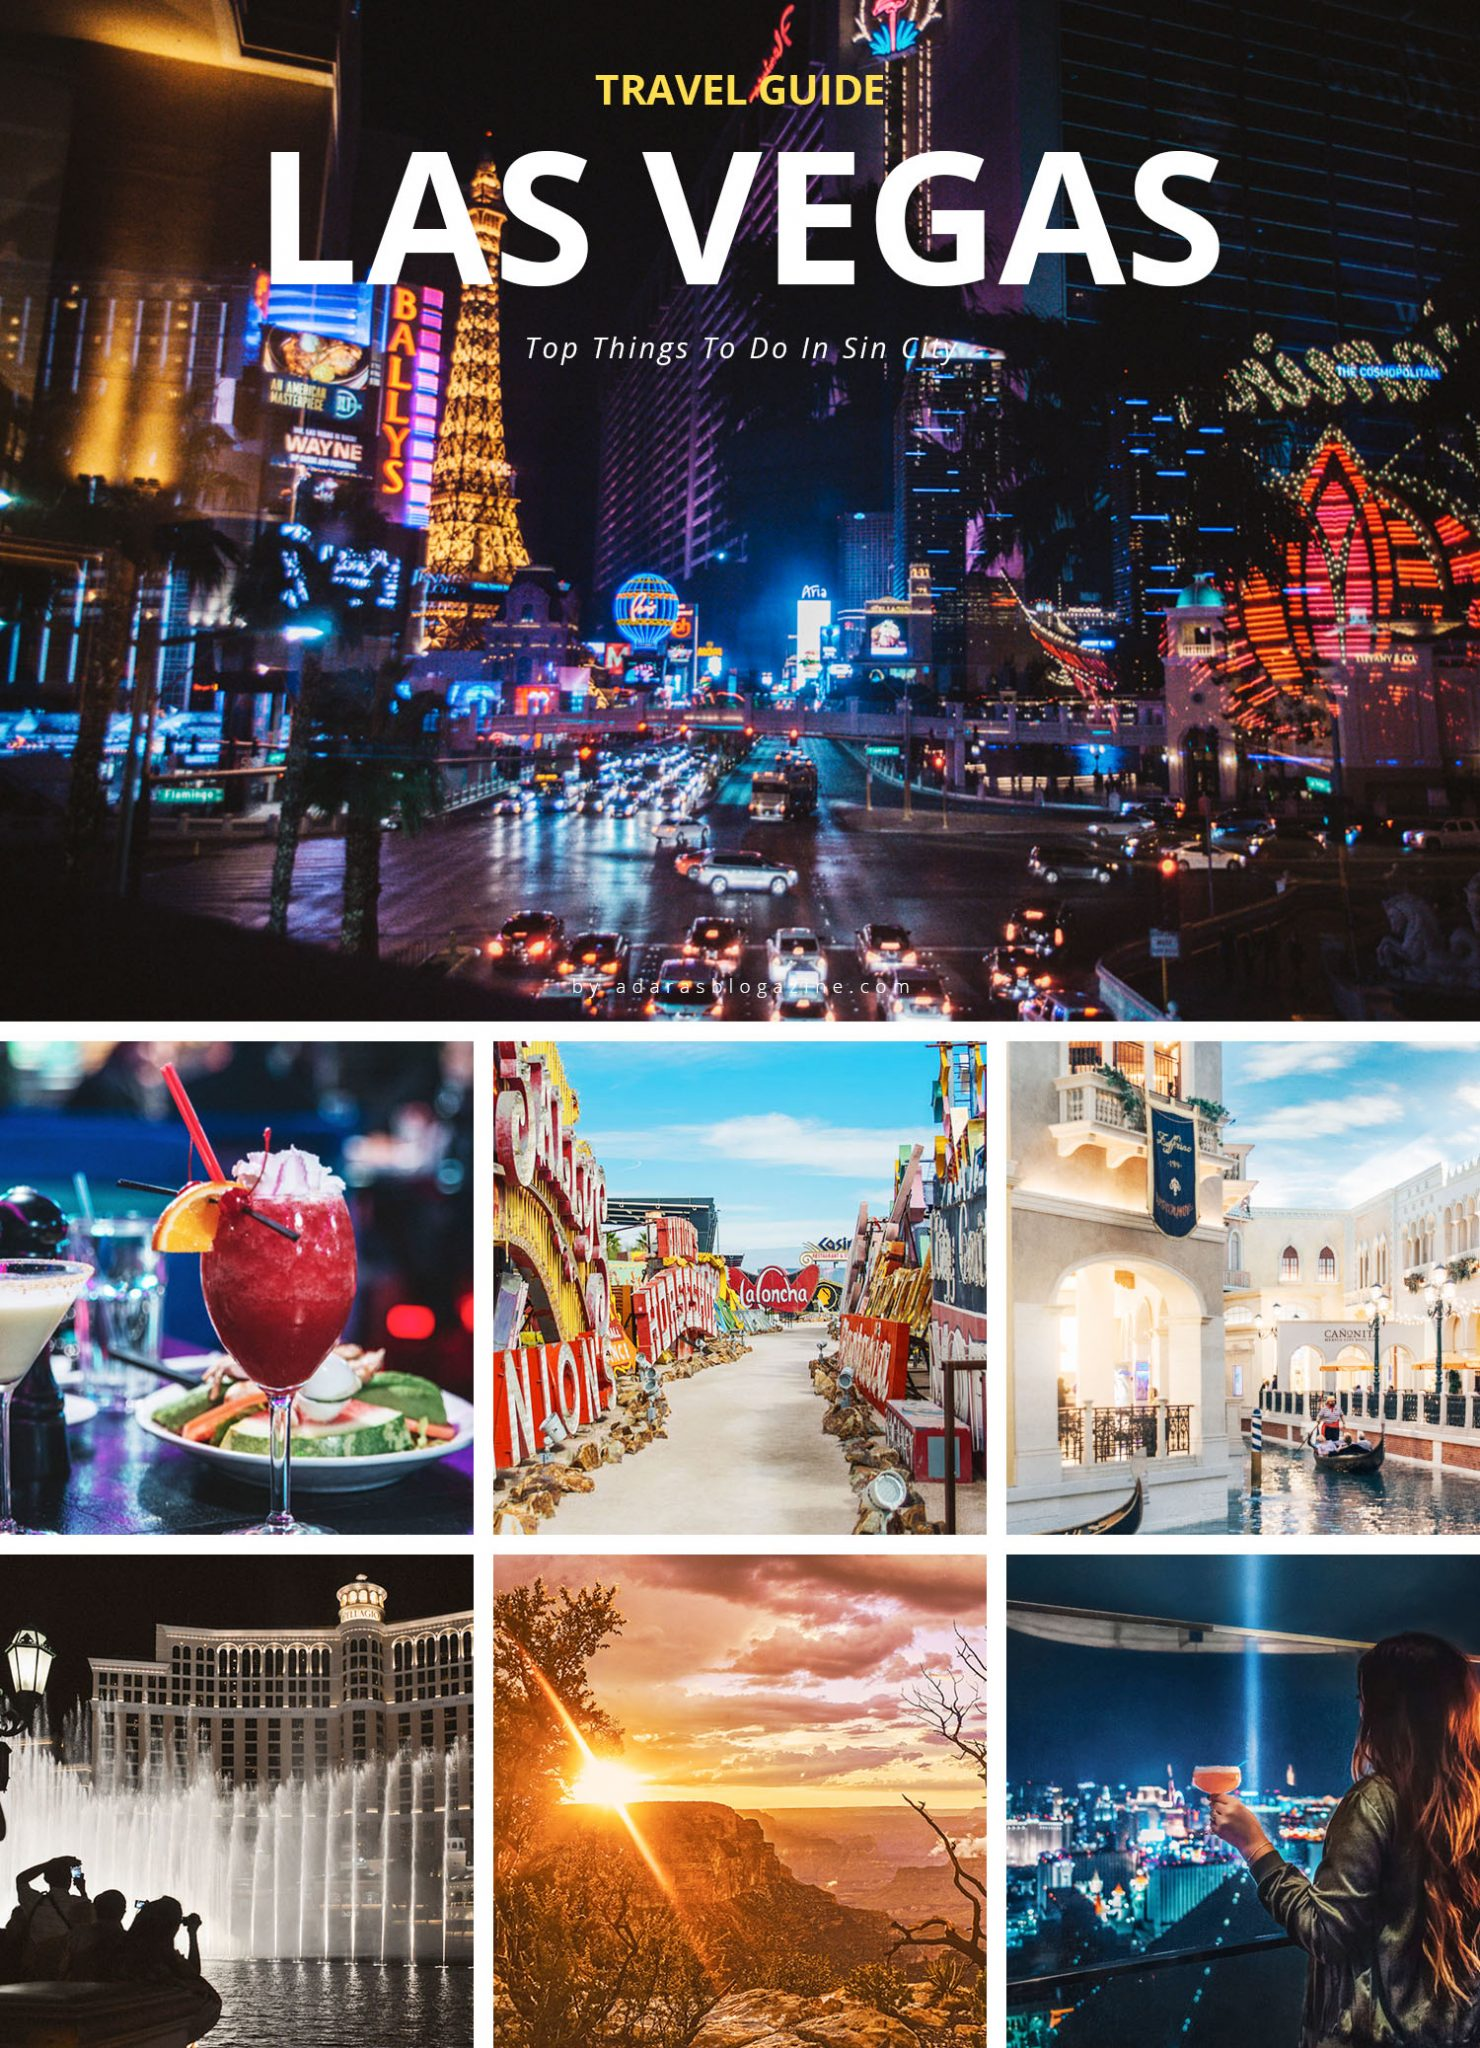 Top 30 things to do in Las Vegas - Adaras Travel Guide to Sin City